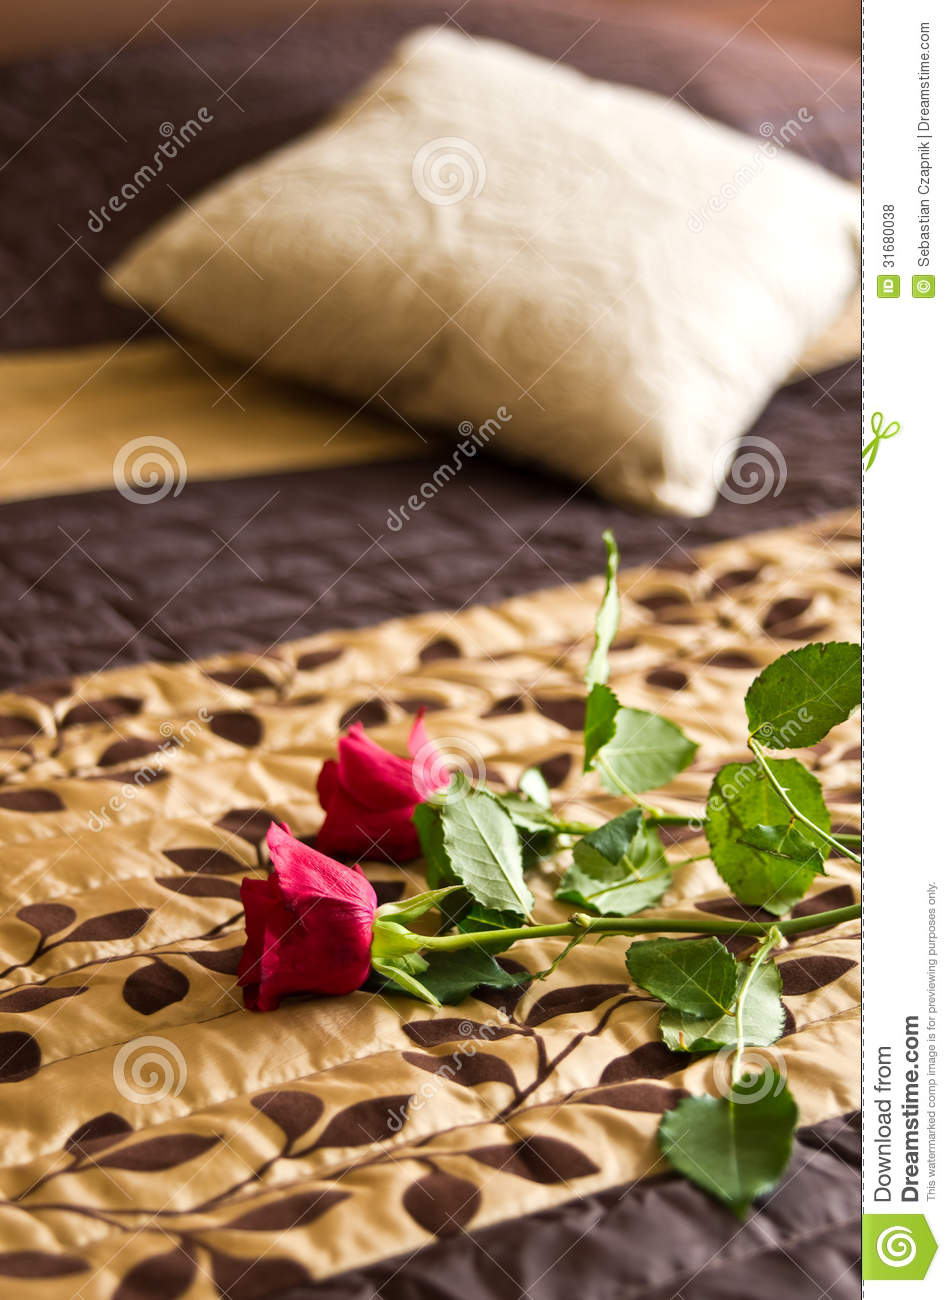 Roses on bed royalty free stock photos image 31680038 for Bed decoration with roses